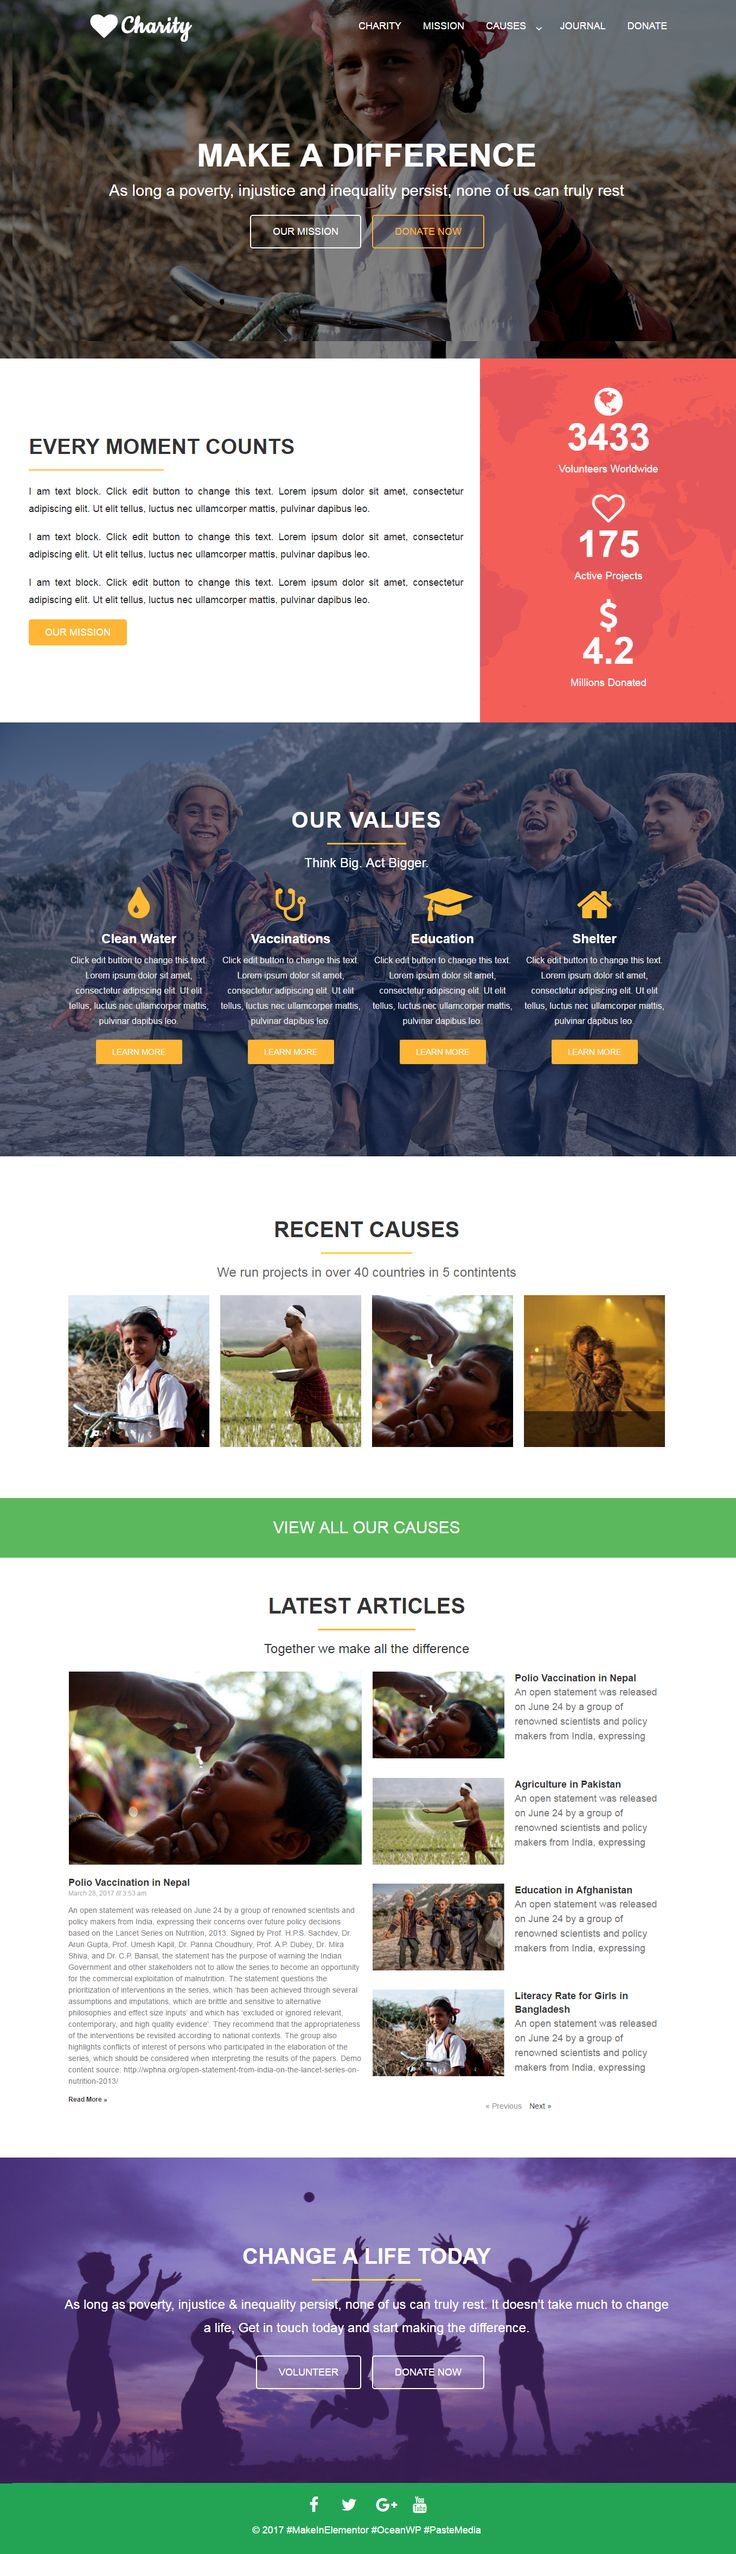 Landing Page / Homepage Elementor Layout Template For Charity/ Non Profit /  NGO Websites  Ngo Templates